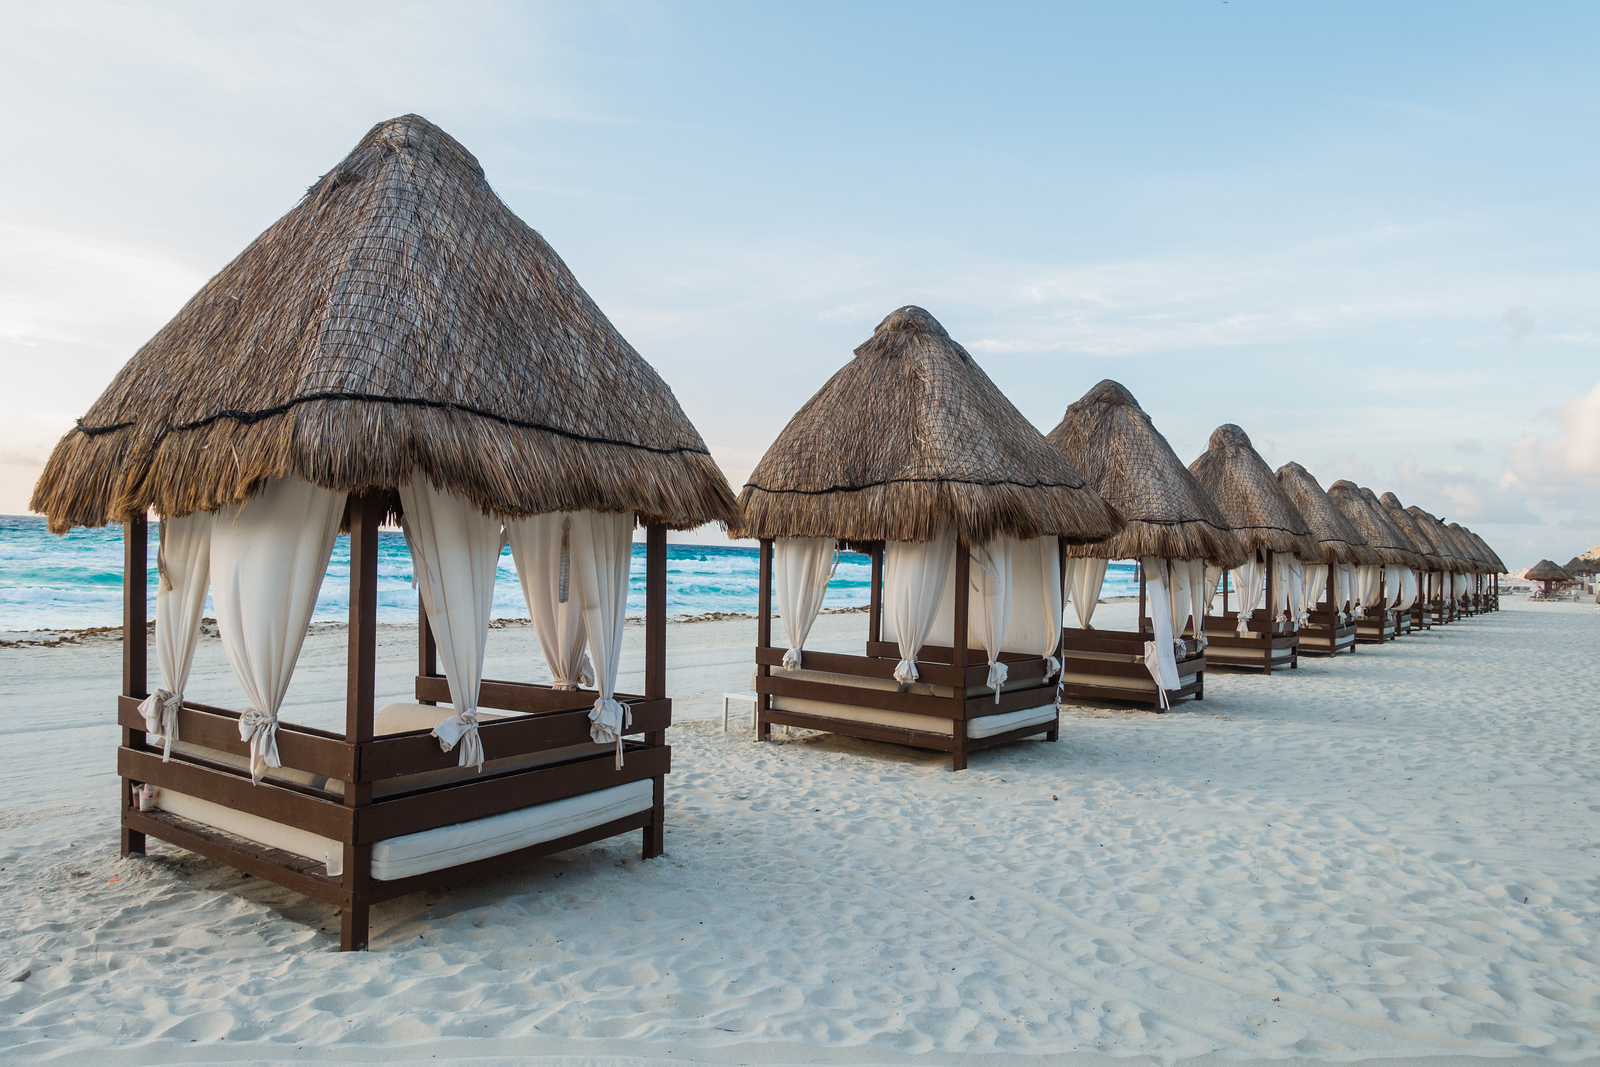 All Inclusive Luxury Paradisus Cancun Resort in Mexico